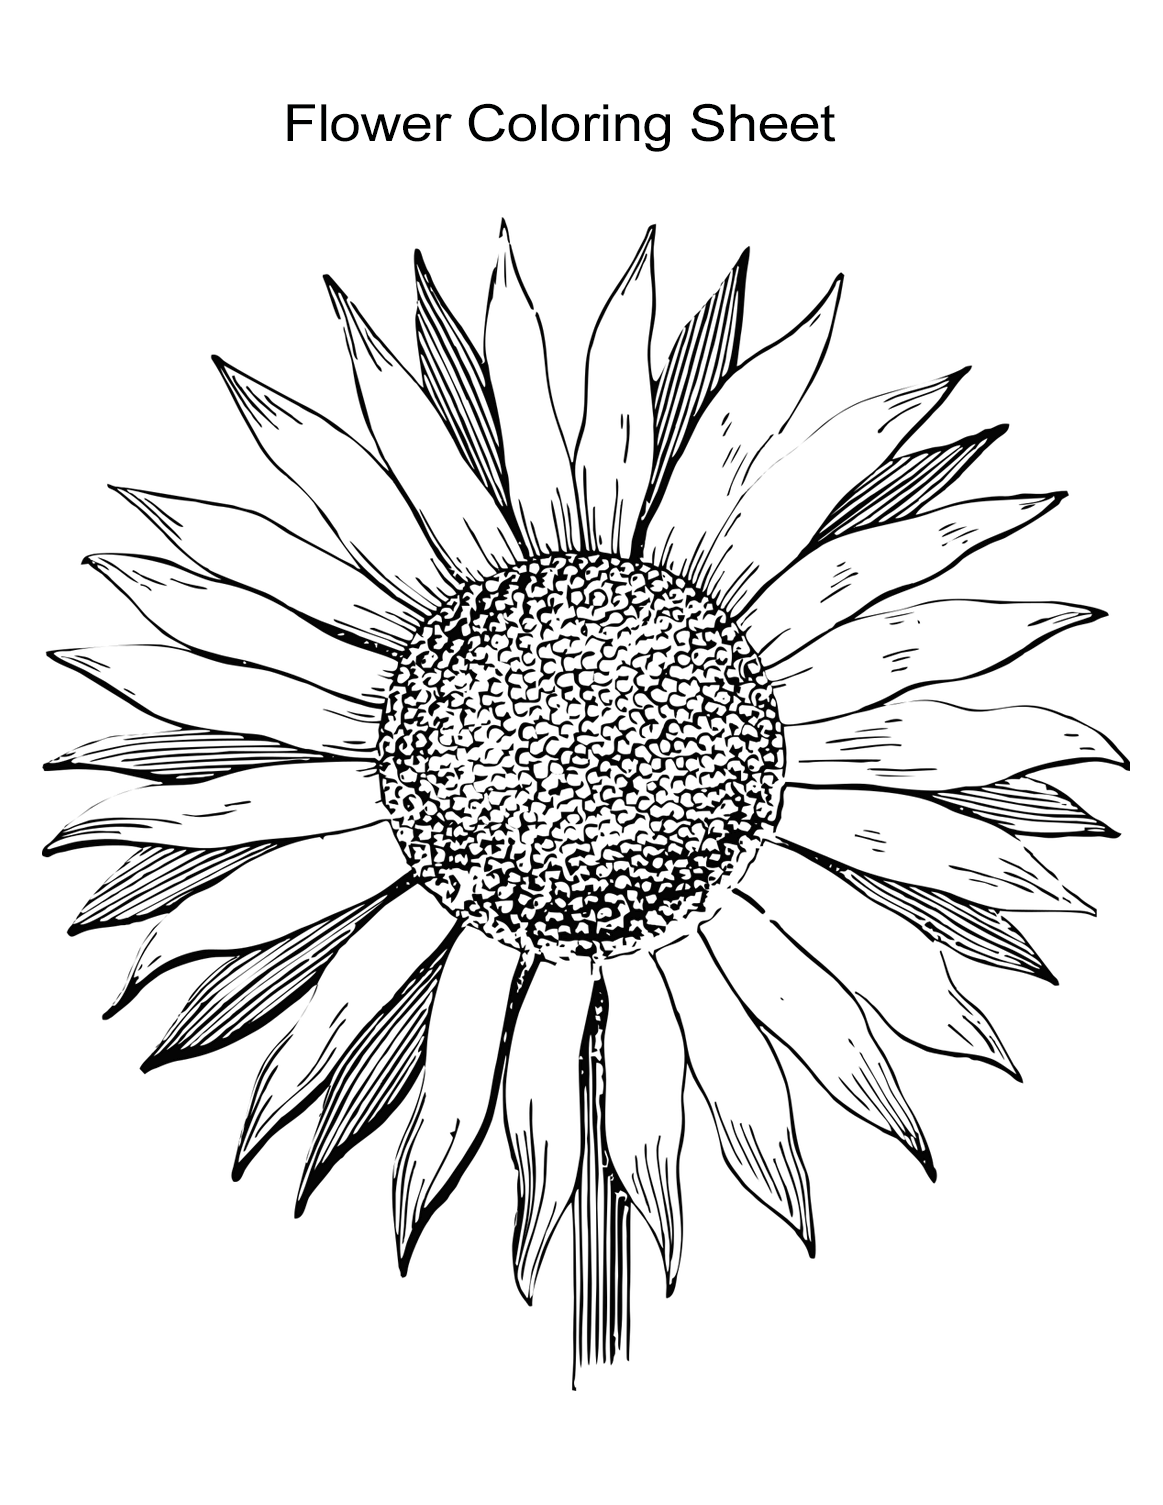 pictures of flowers to color free printables 10 flower coloring sheets for girls and boys all esl pictures of free printables color flowers to